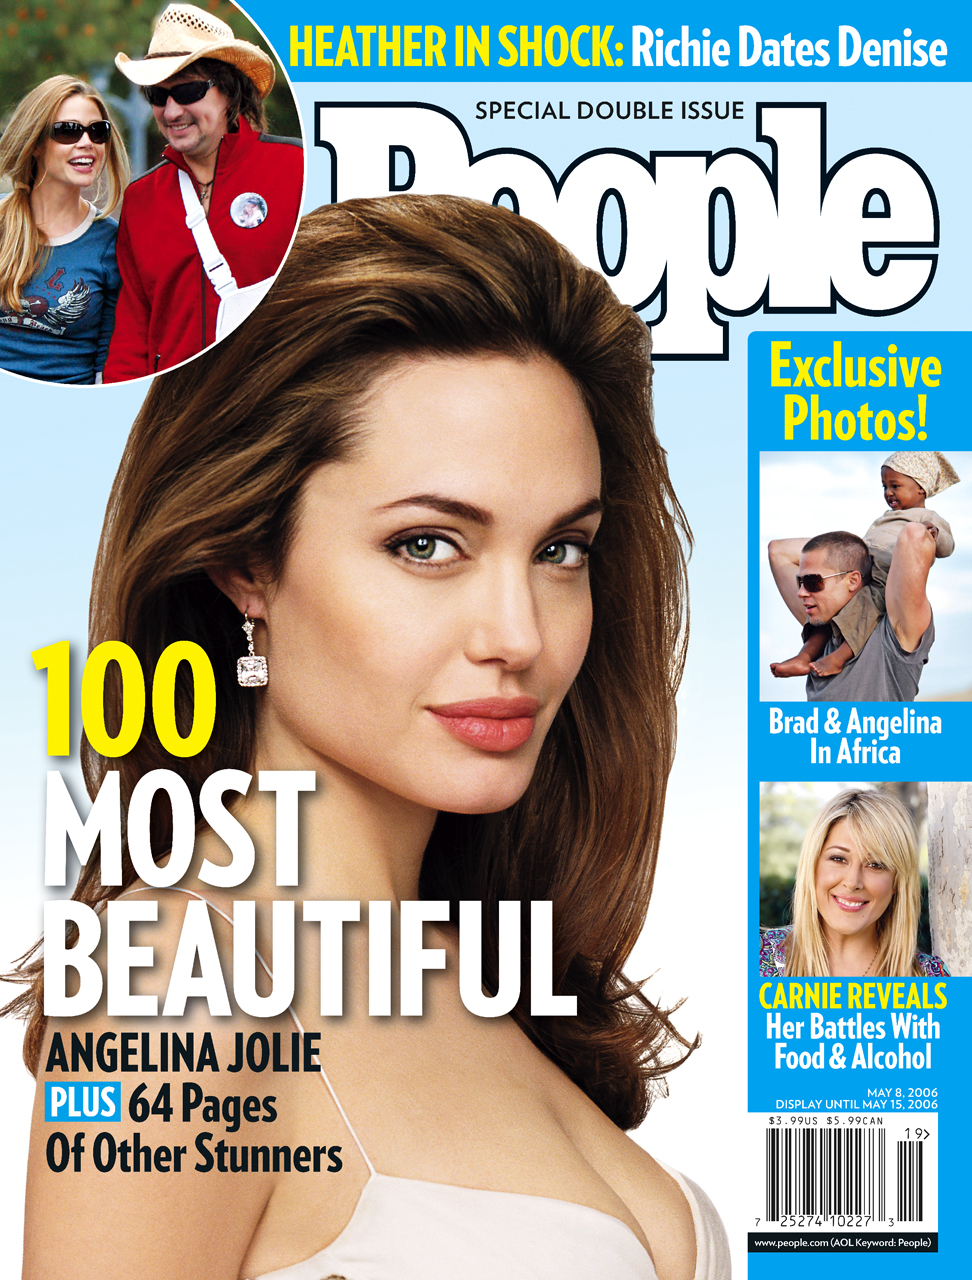 People Magazine Coupon - $1.00 off People Magazine -Living Rich With ...